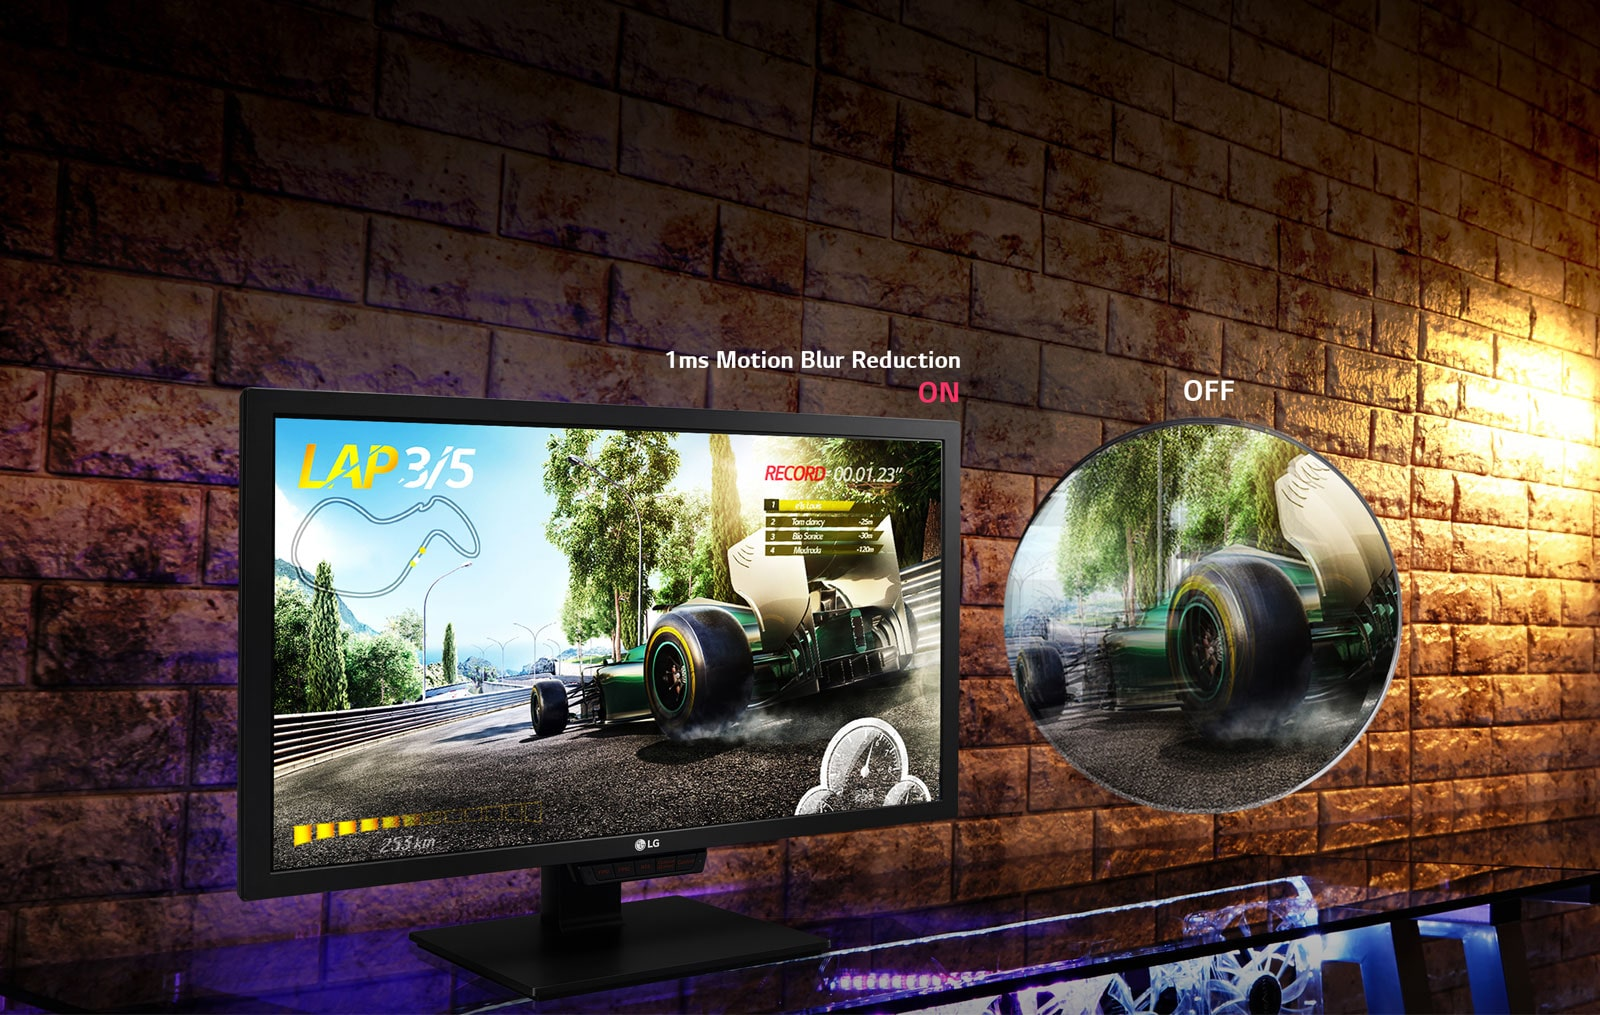 LG 24GM79G - Full HD Gaming Monitor With 1ms Motion Blur